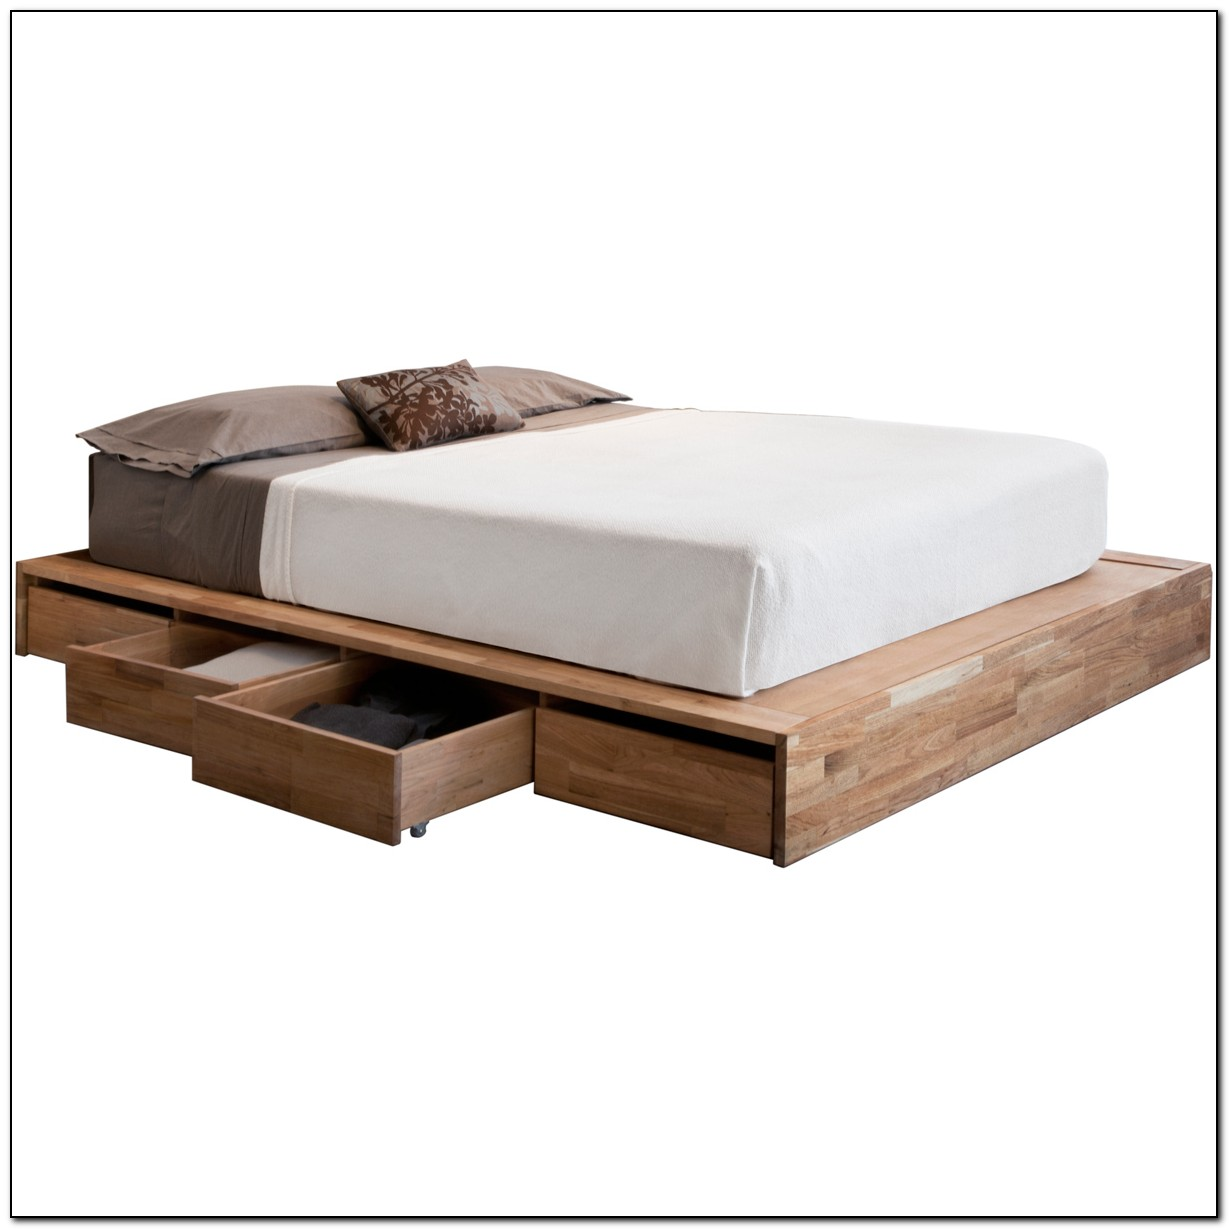 Full Size Platform Bed With Drawers Beds Home Design Ideas Q7pqdl6q8z6517